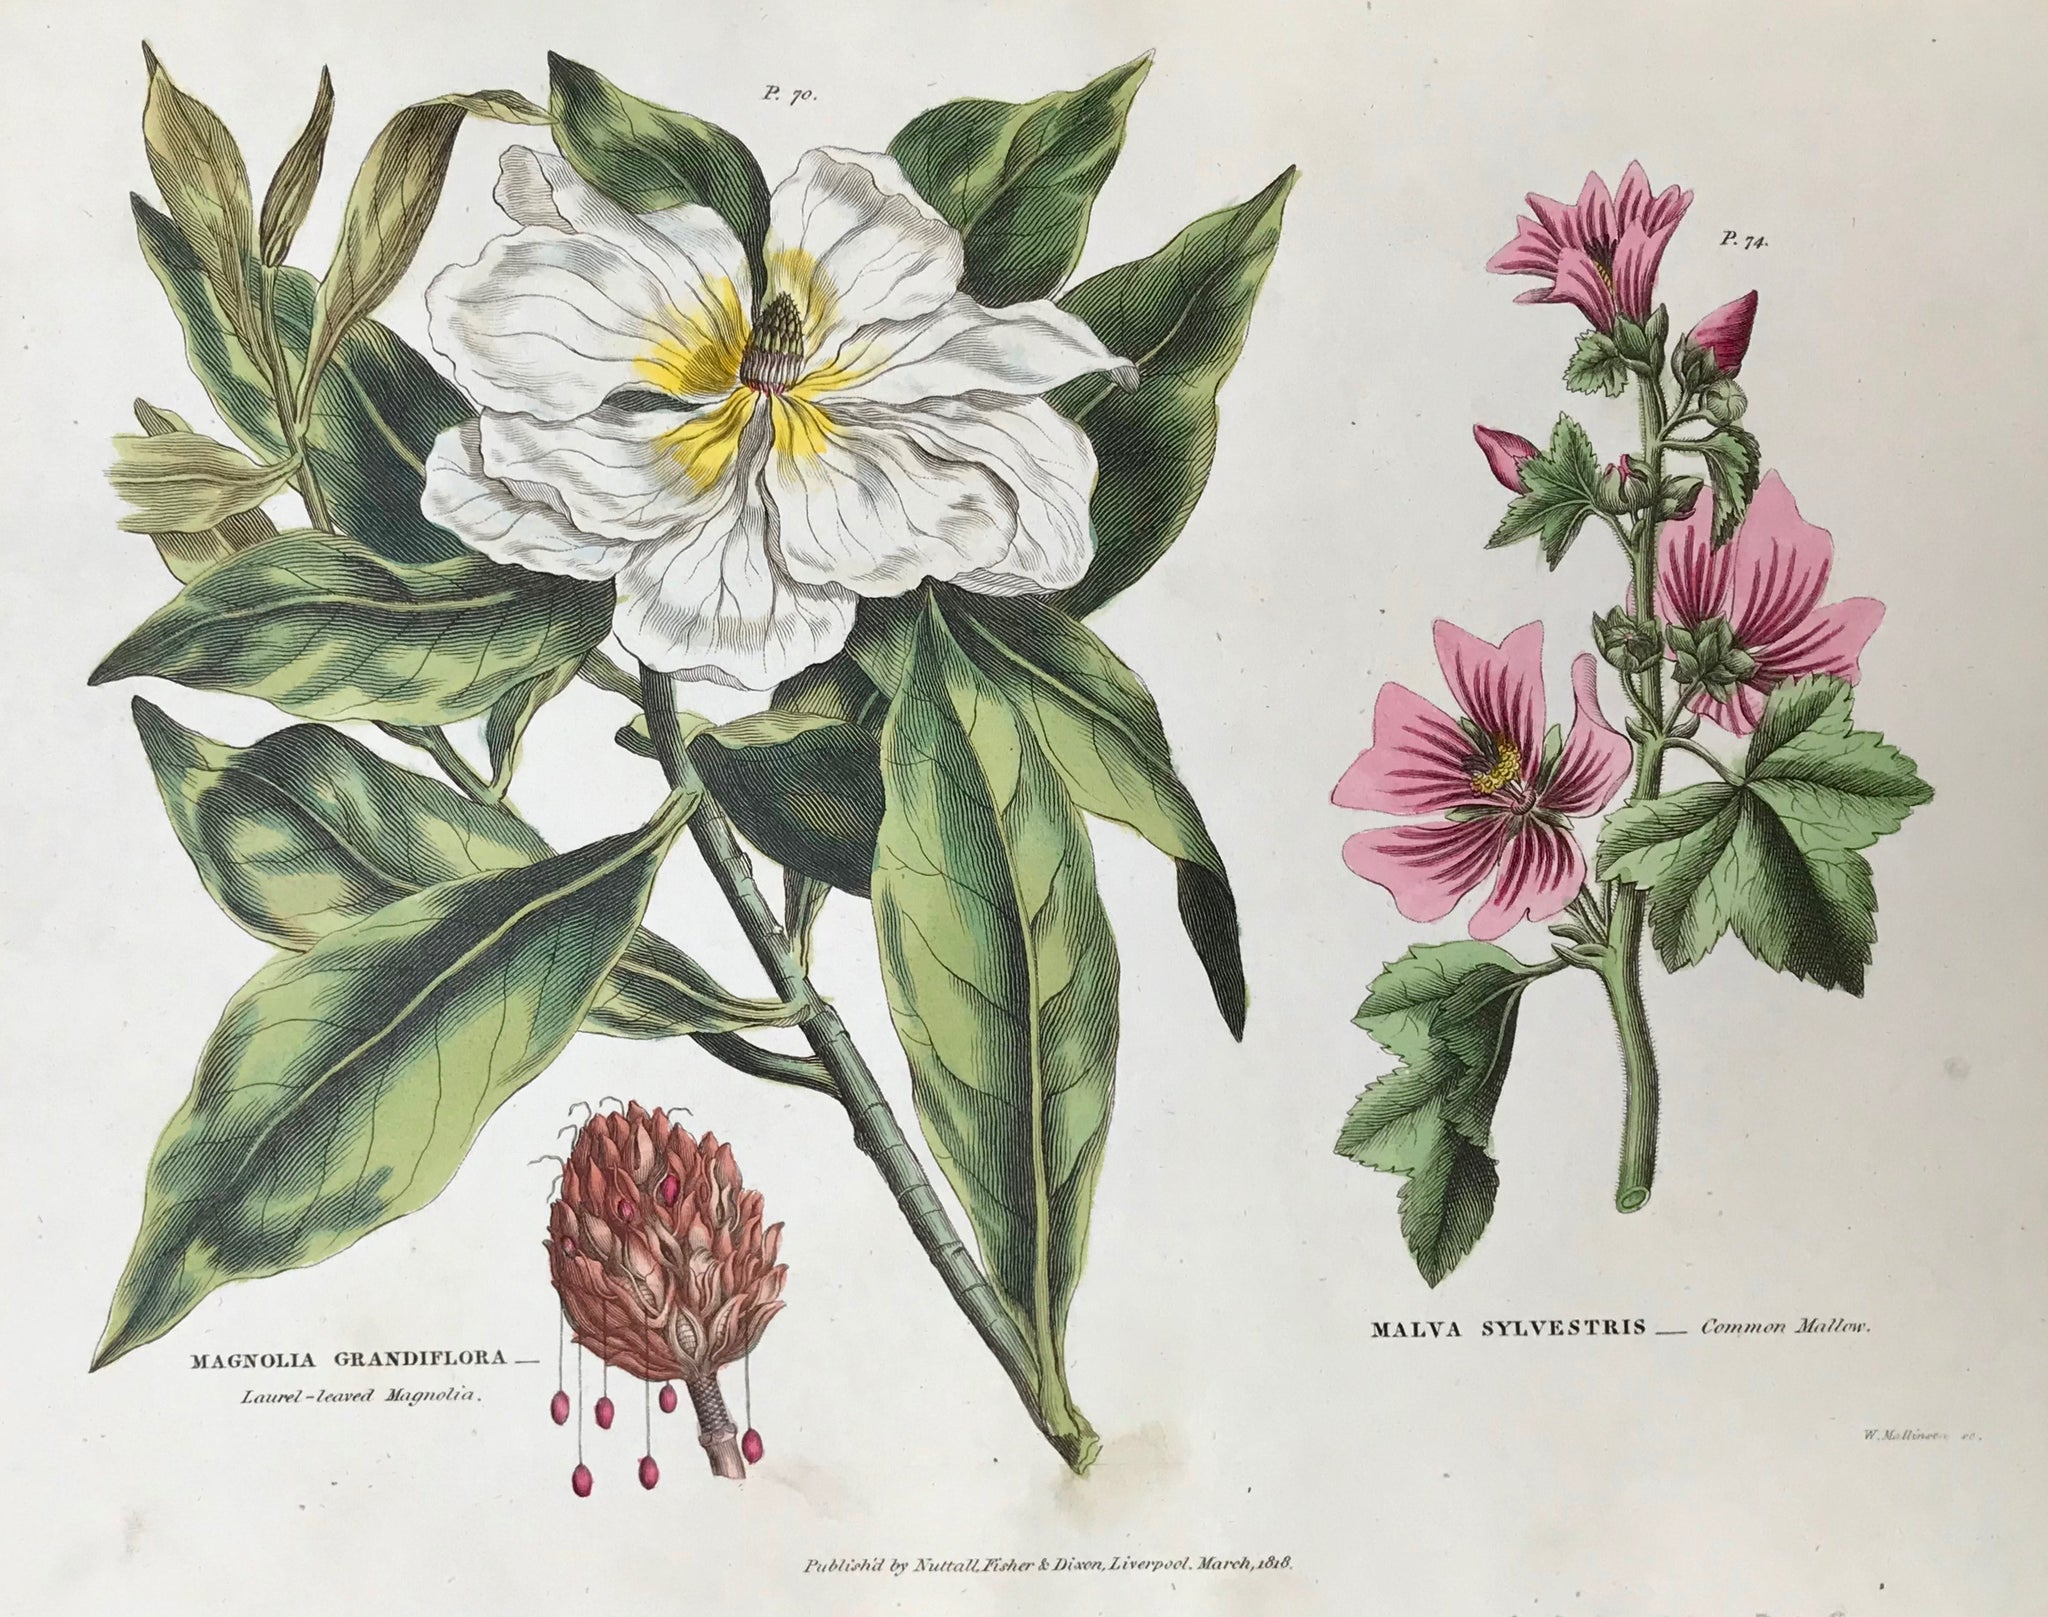 "Magnolia Grandiflora Laurel-Leaved Magnolia Malve Sylvestris Common Mallow  Antique Botanical Prints from ""The Universal Herbal"" by Thomas Green.  The complete title of this accurately and absolutely delightfully hand-colored work is: ""The Universal Herbal"", or Botanical, Medical, and Agricultural Dictionary, containing an Account of all the known Plants in the World ..."